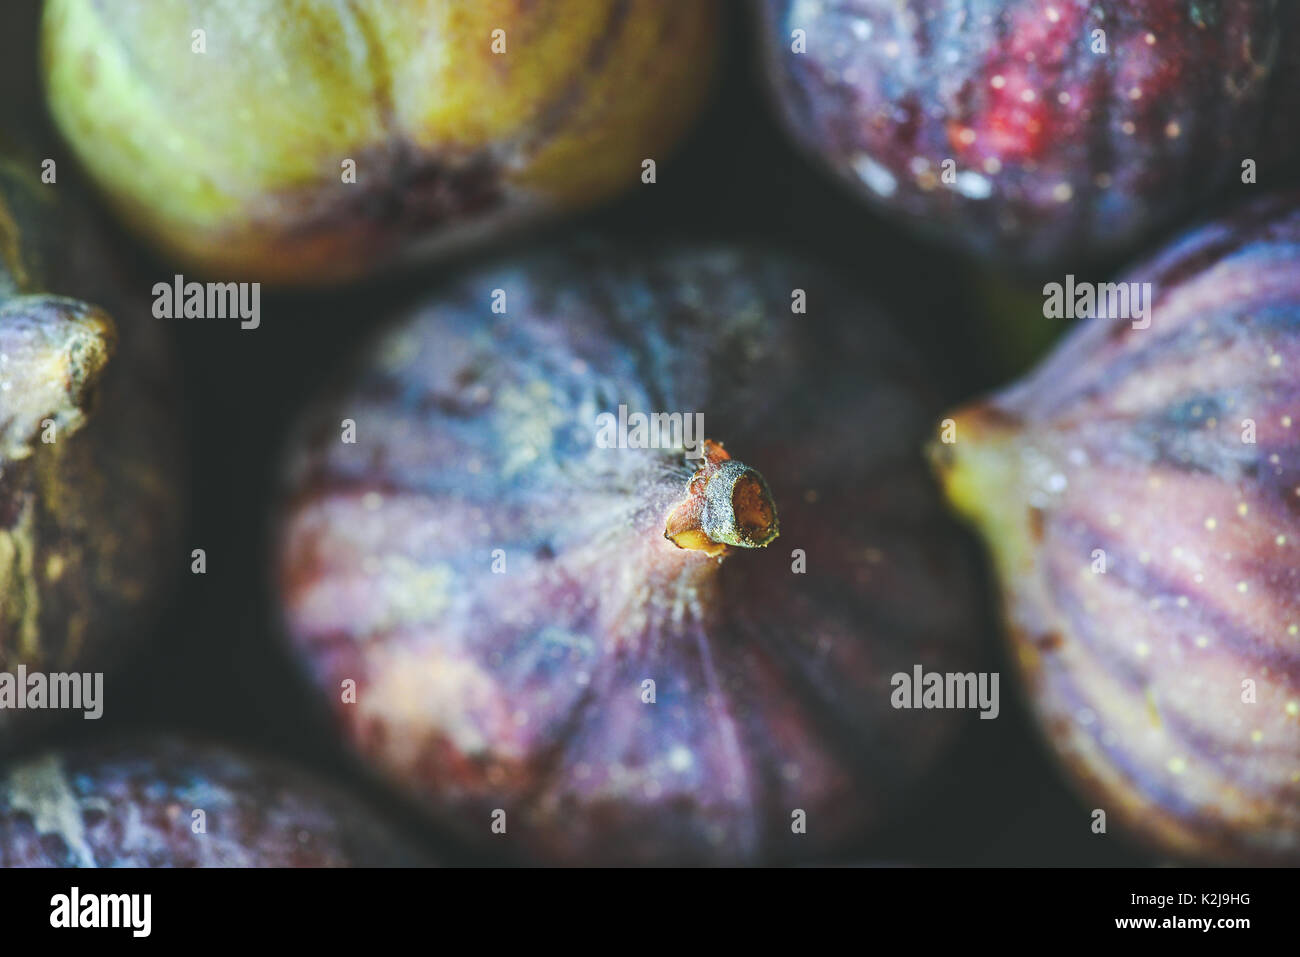 Close-up of fresh ripe purple figs, top view, horizontal composition. Food texture and background. Organic fruit, local produce, farming, healthy food - Stock Image